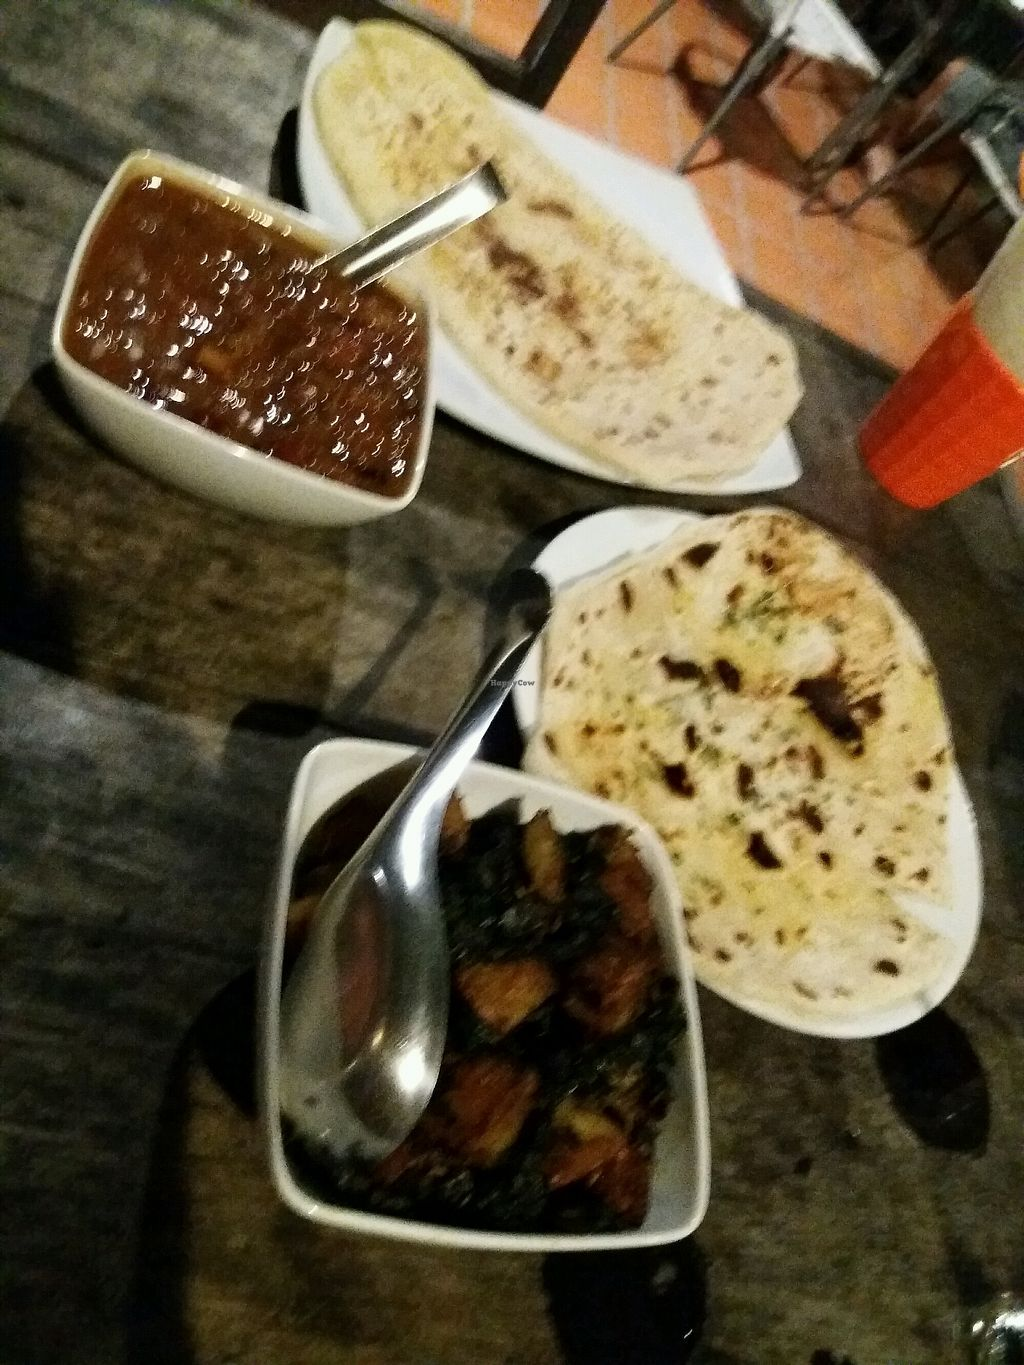 "Photo of Cafe 2401  by <a href=""/members/profile/KarinS"">KarinS</a> <br/>2 different dishes and naan <br/> December 17, 2017  - <a href='/contact/abuse/image/89235/336504'>Report</a>"